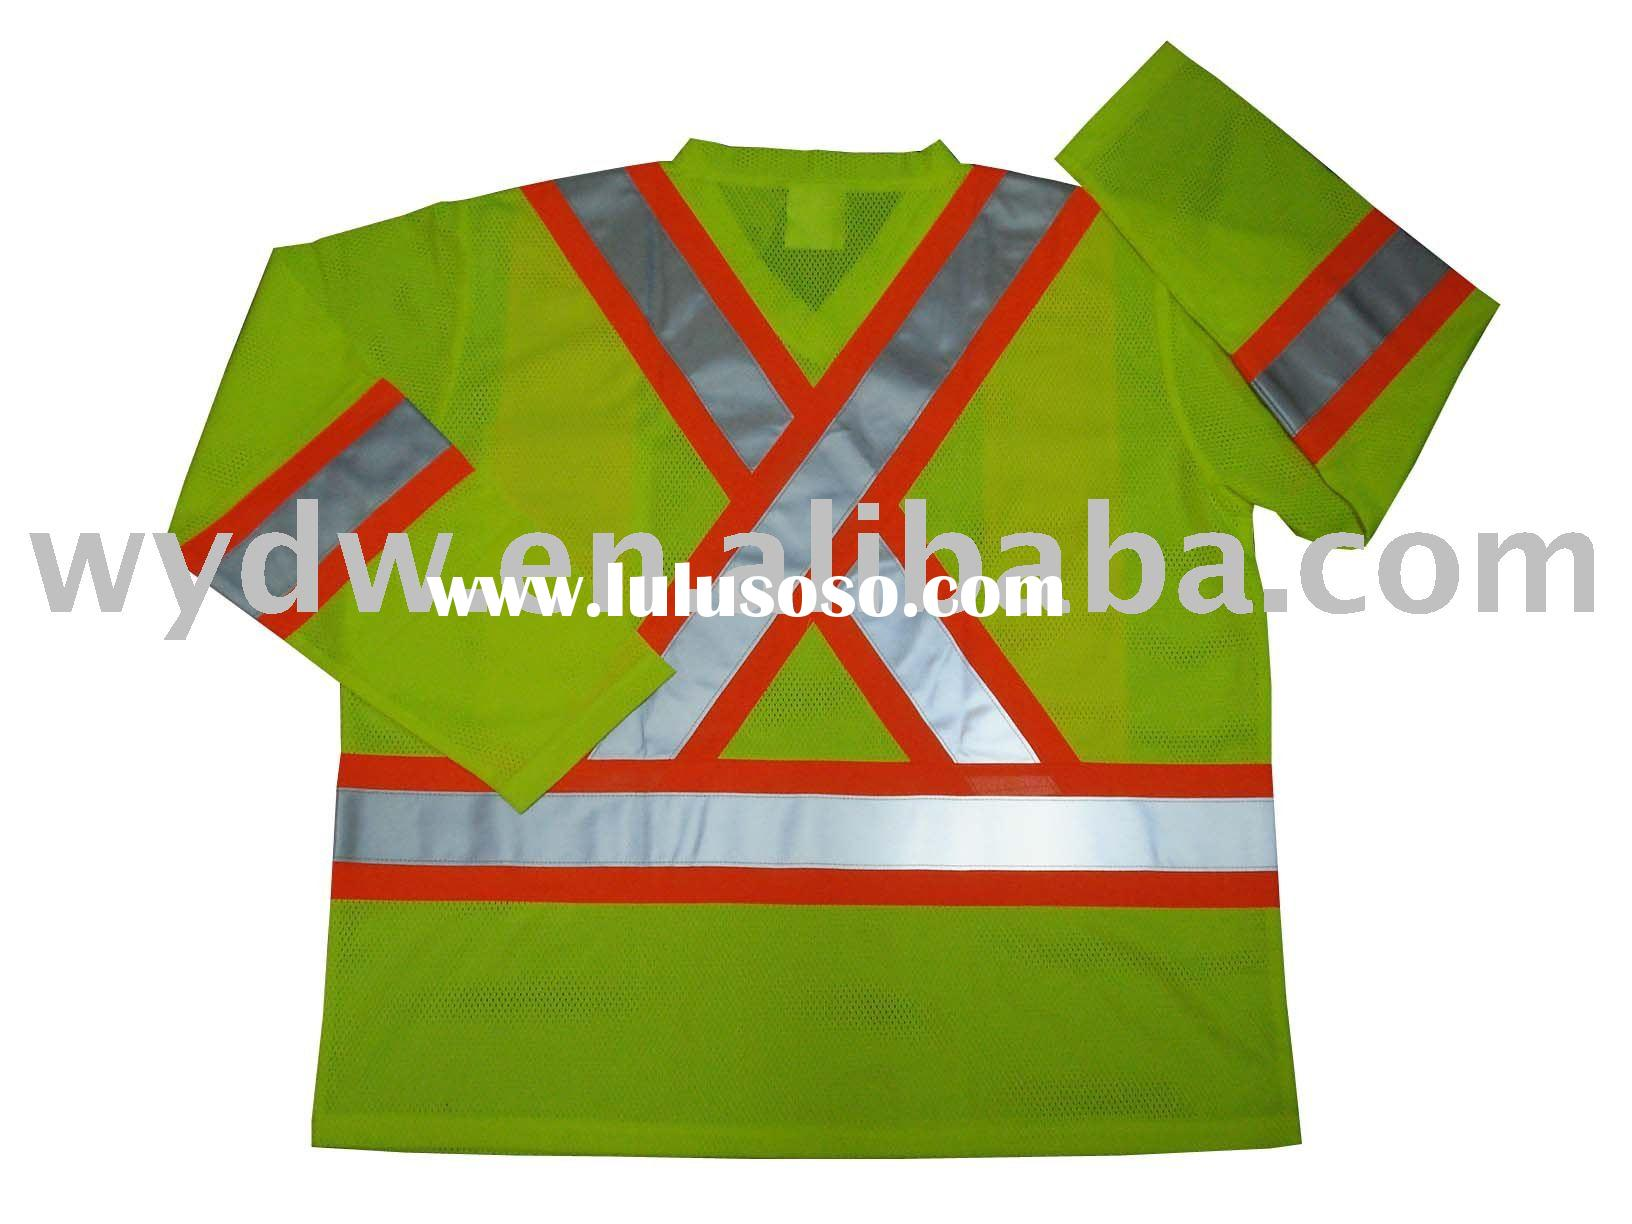 100%polyester traffic Safety tee shirt,3M Hi-visibility safety long sleeve t-shirts,Reflective tee s